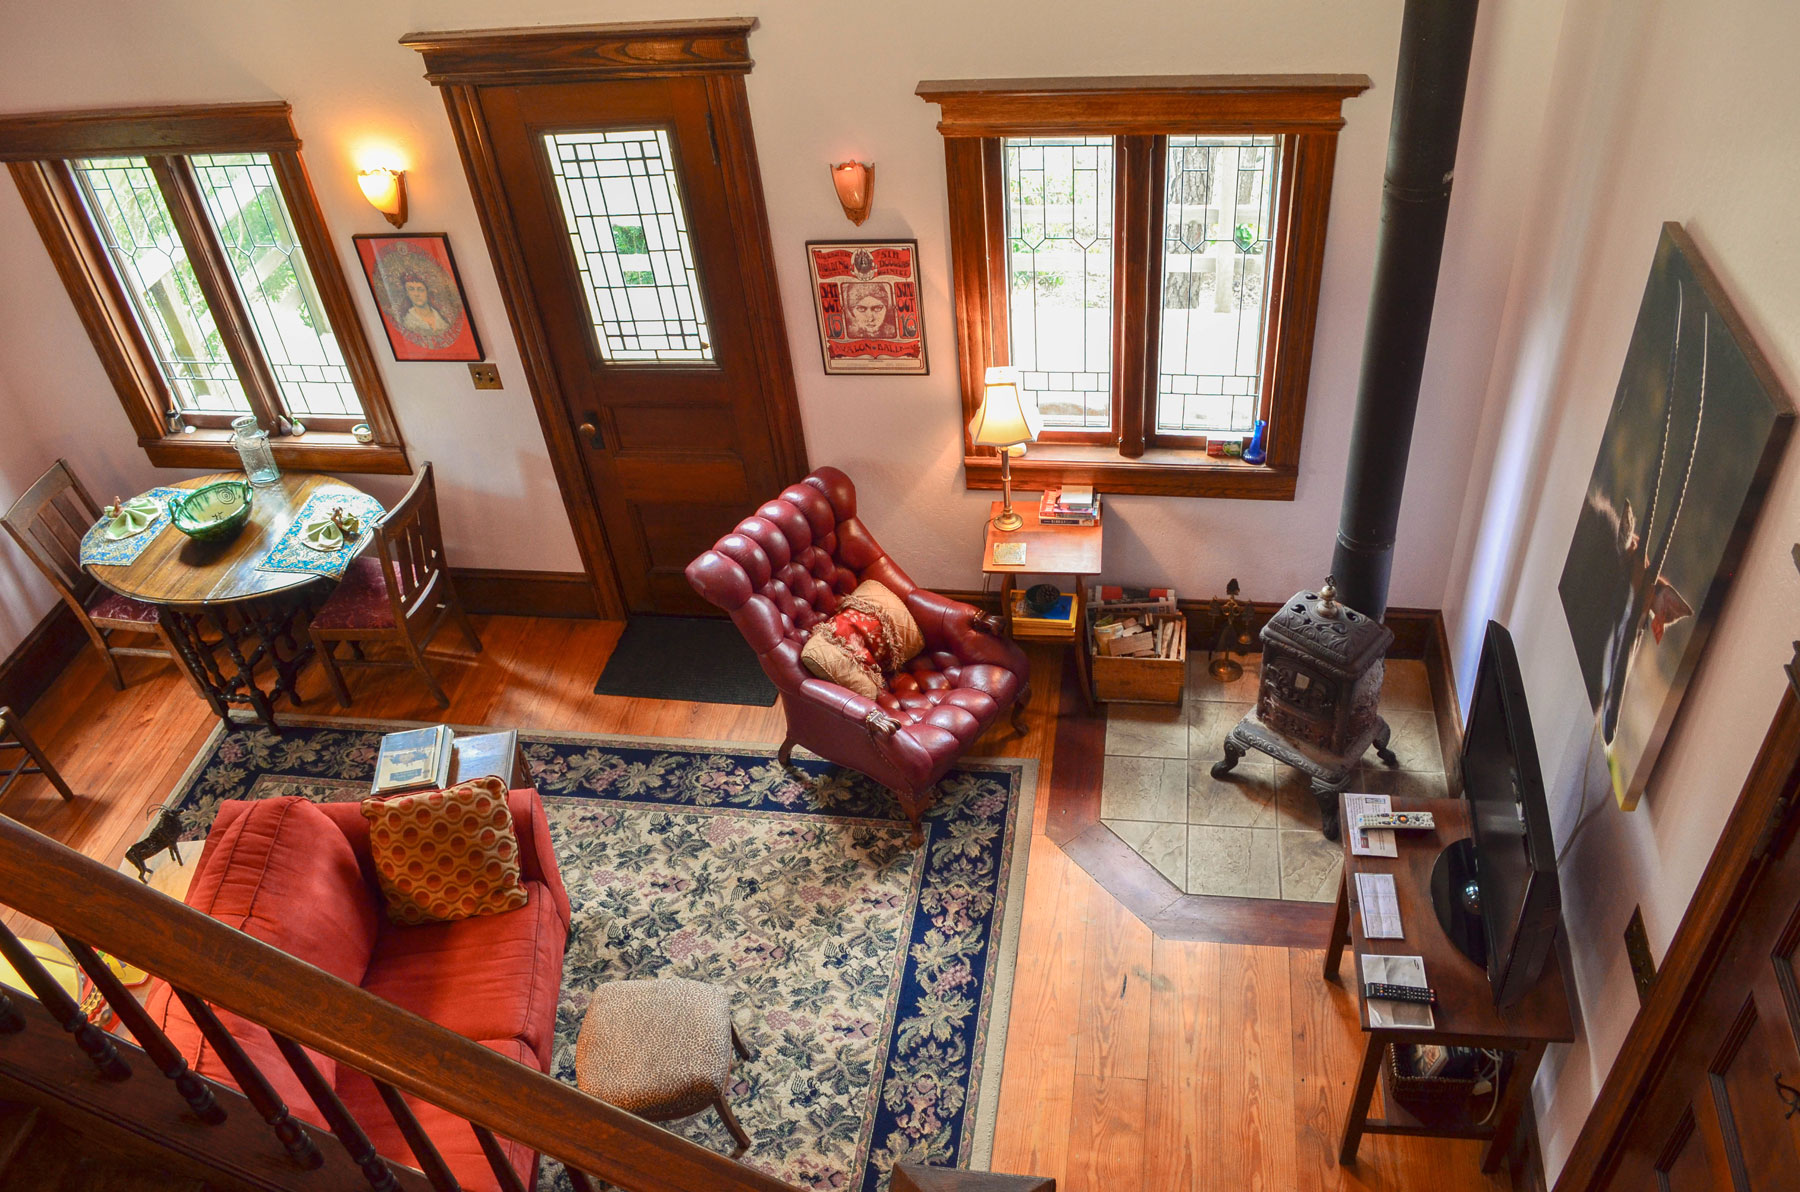 the living room at at the Bridge Cottage at B. Bryan Preserve on the Mendocino Coast